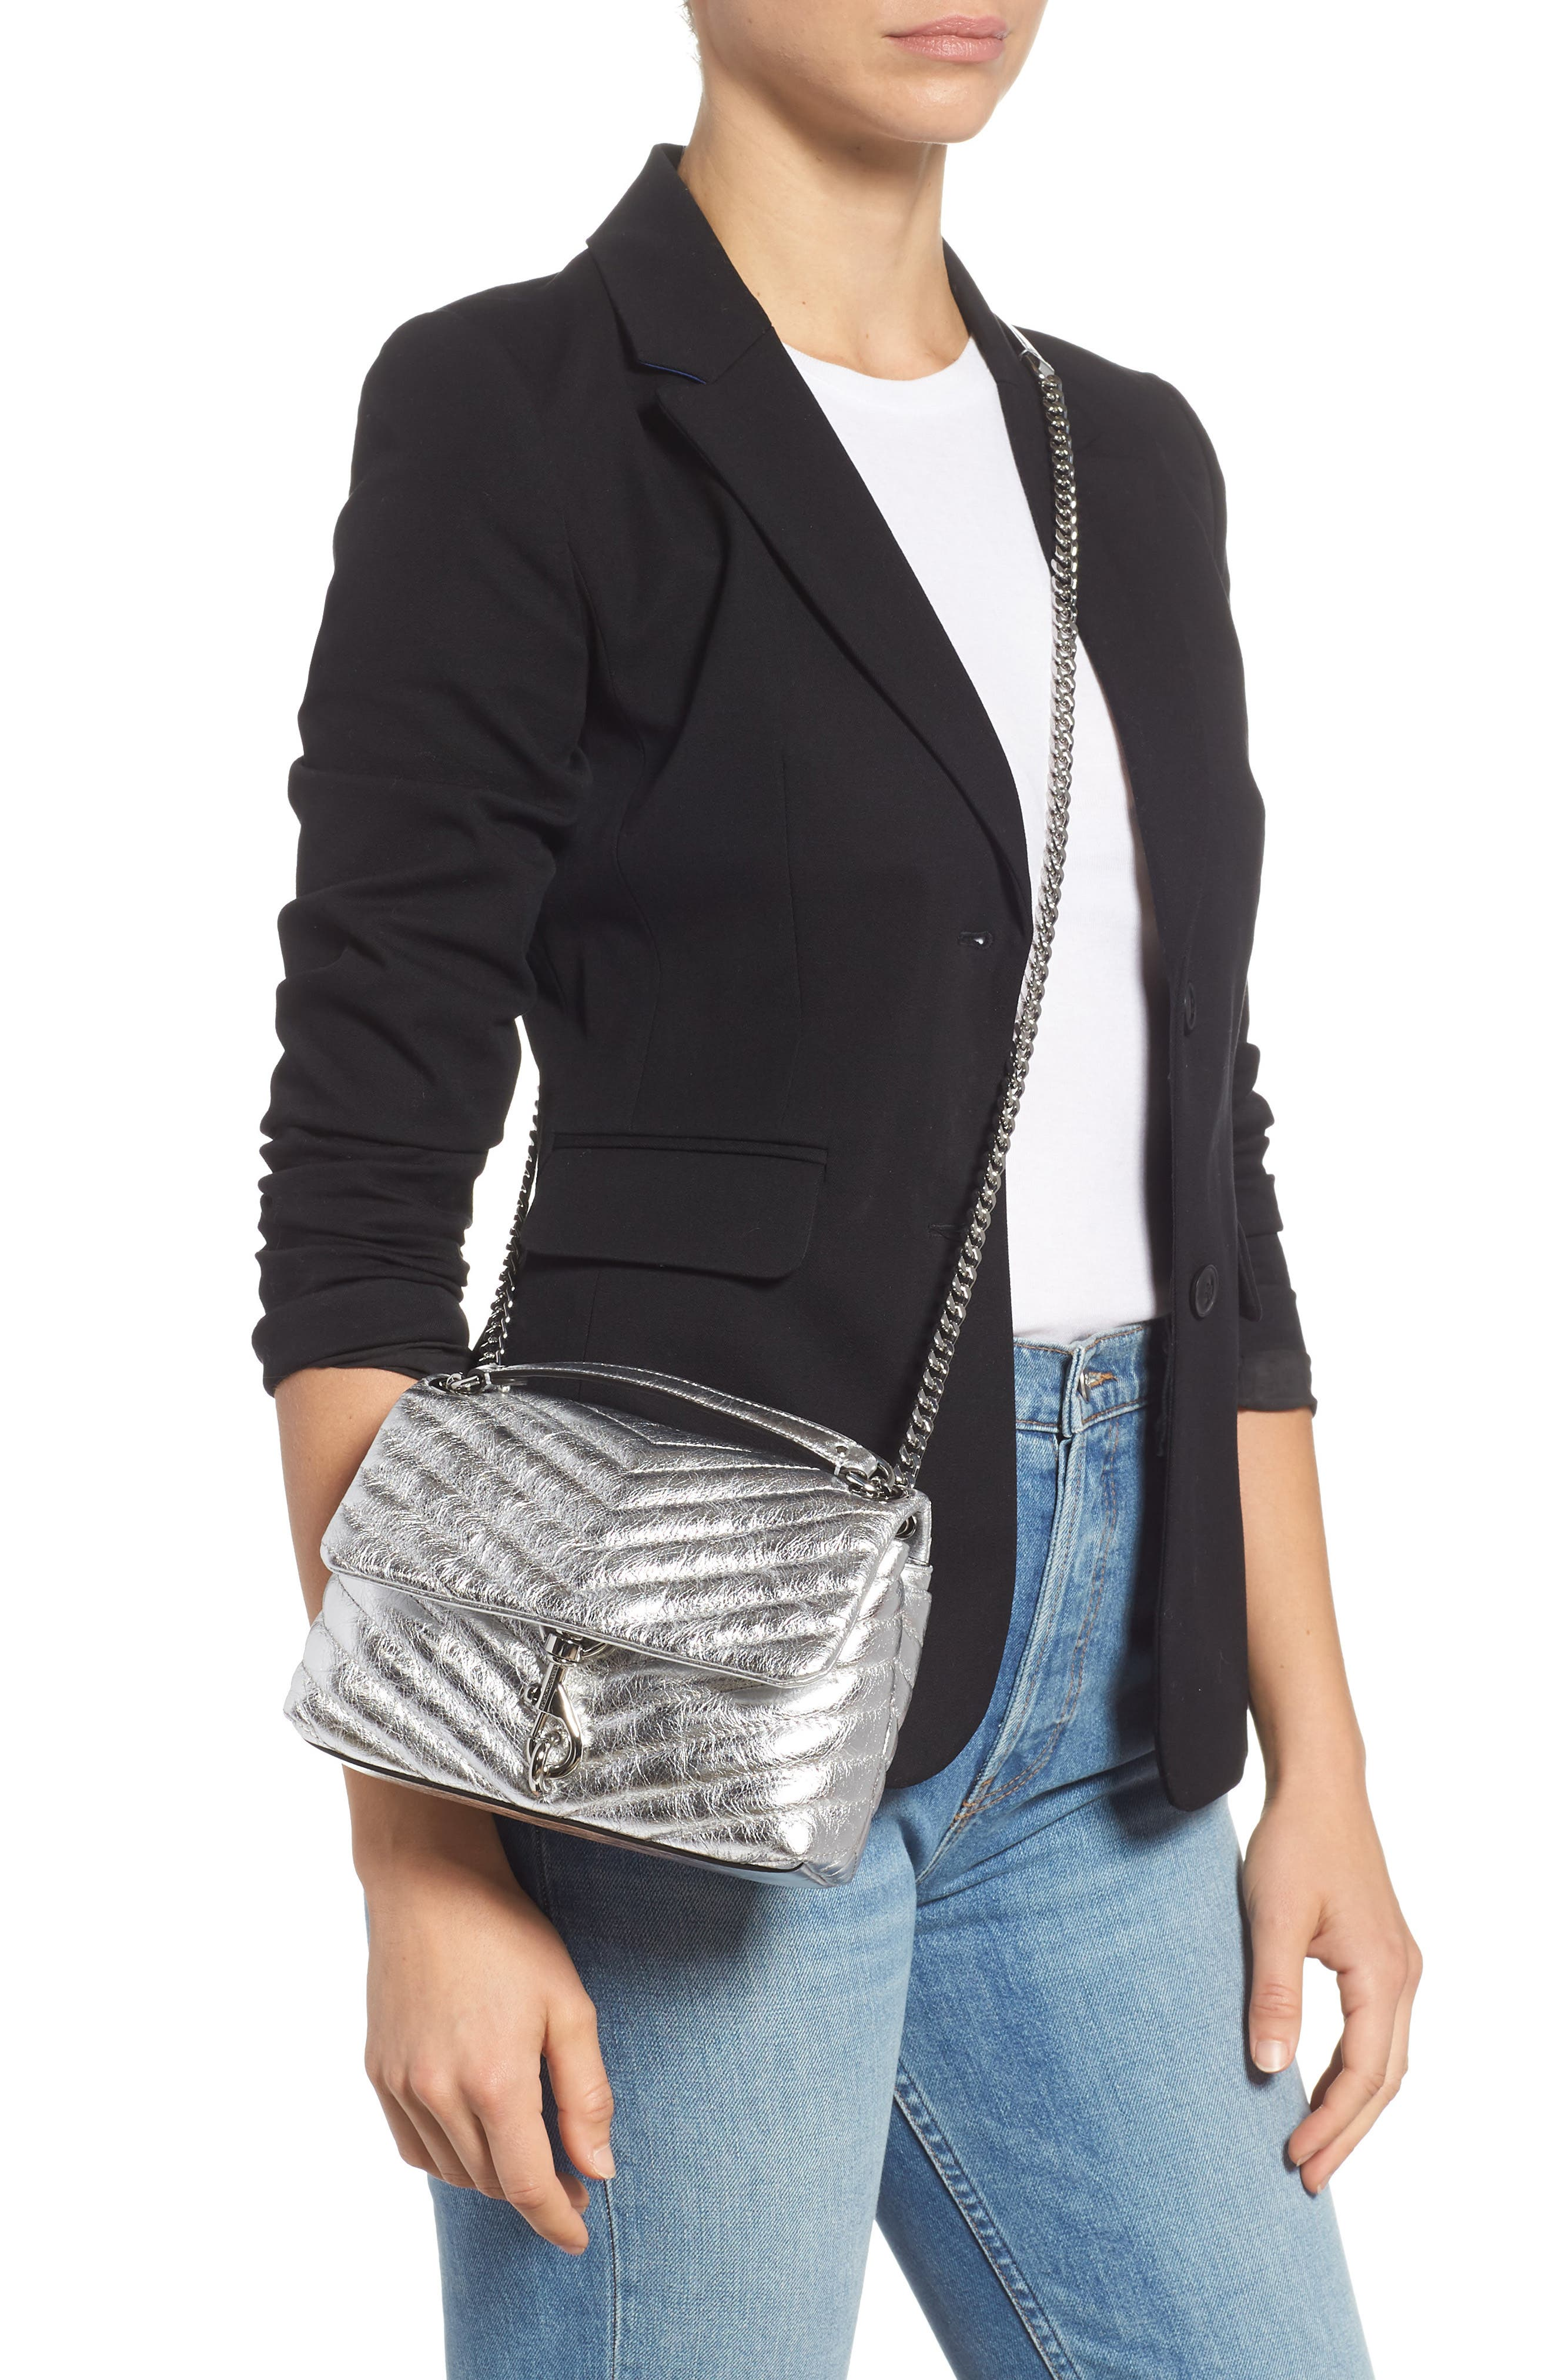 REBECCA MINKOFF, Edie Metallic Leather Shoulder Bag, Alternate thumbnail 2, color, SILVER